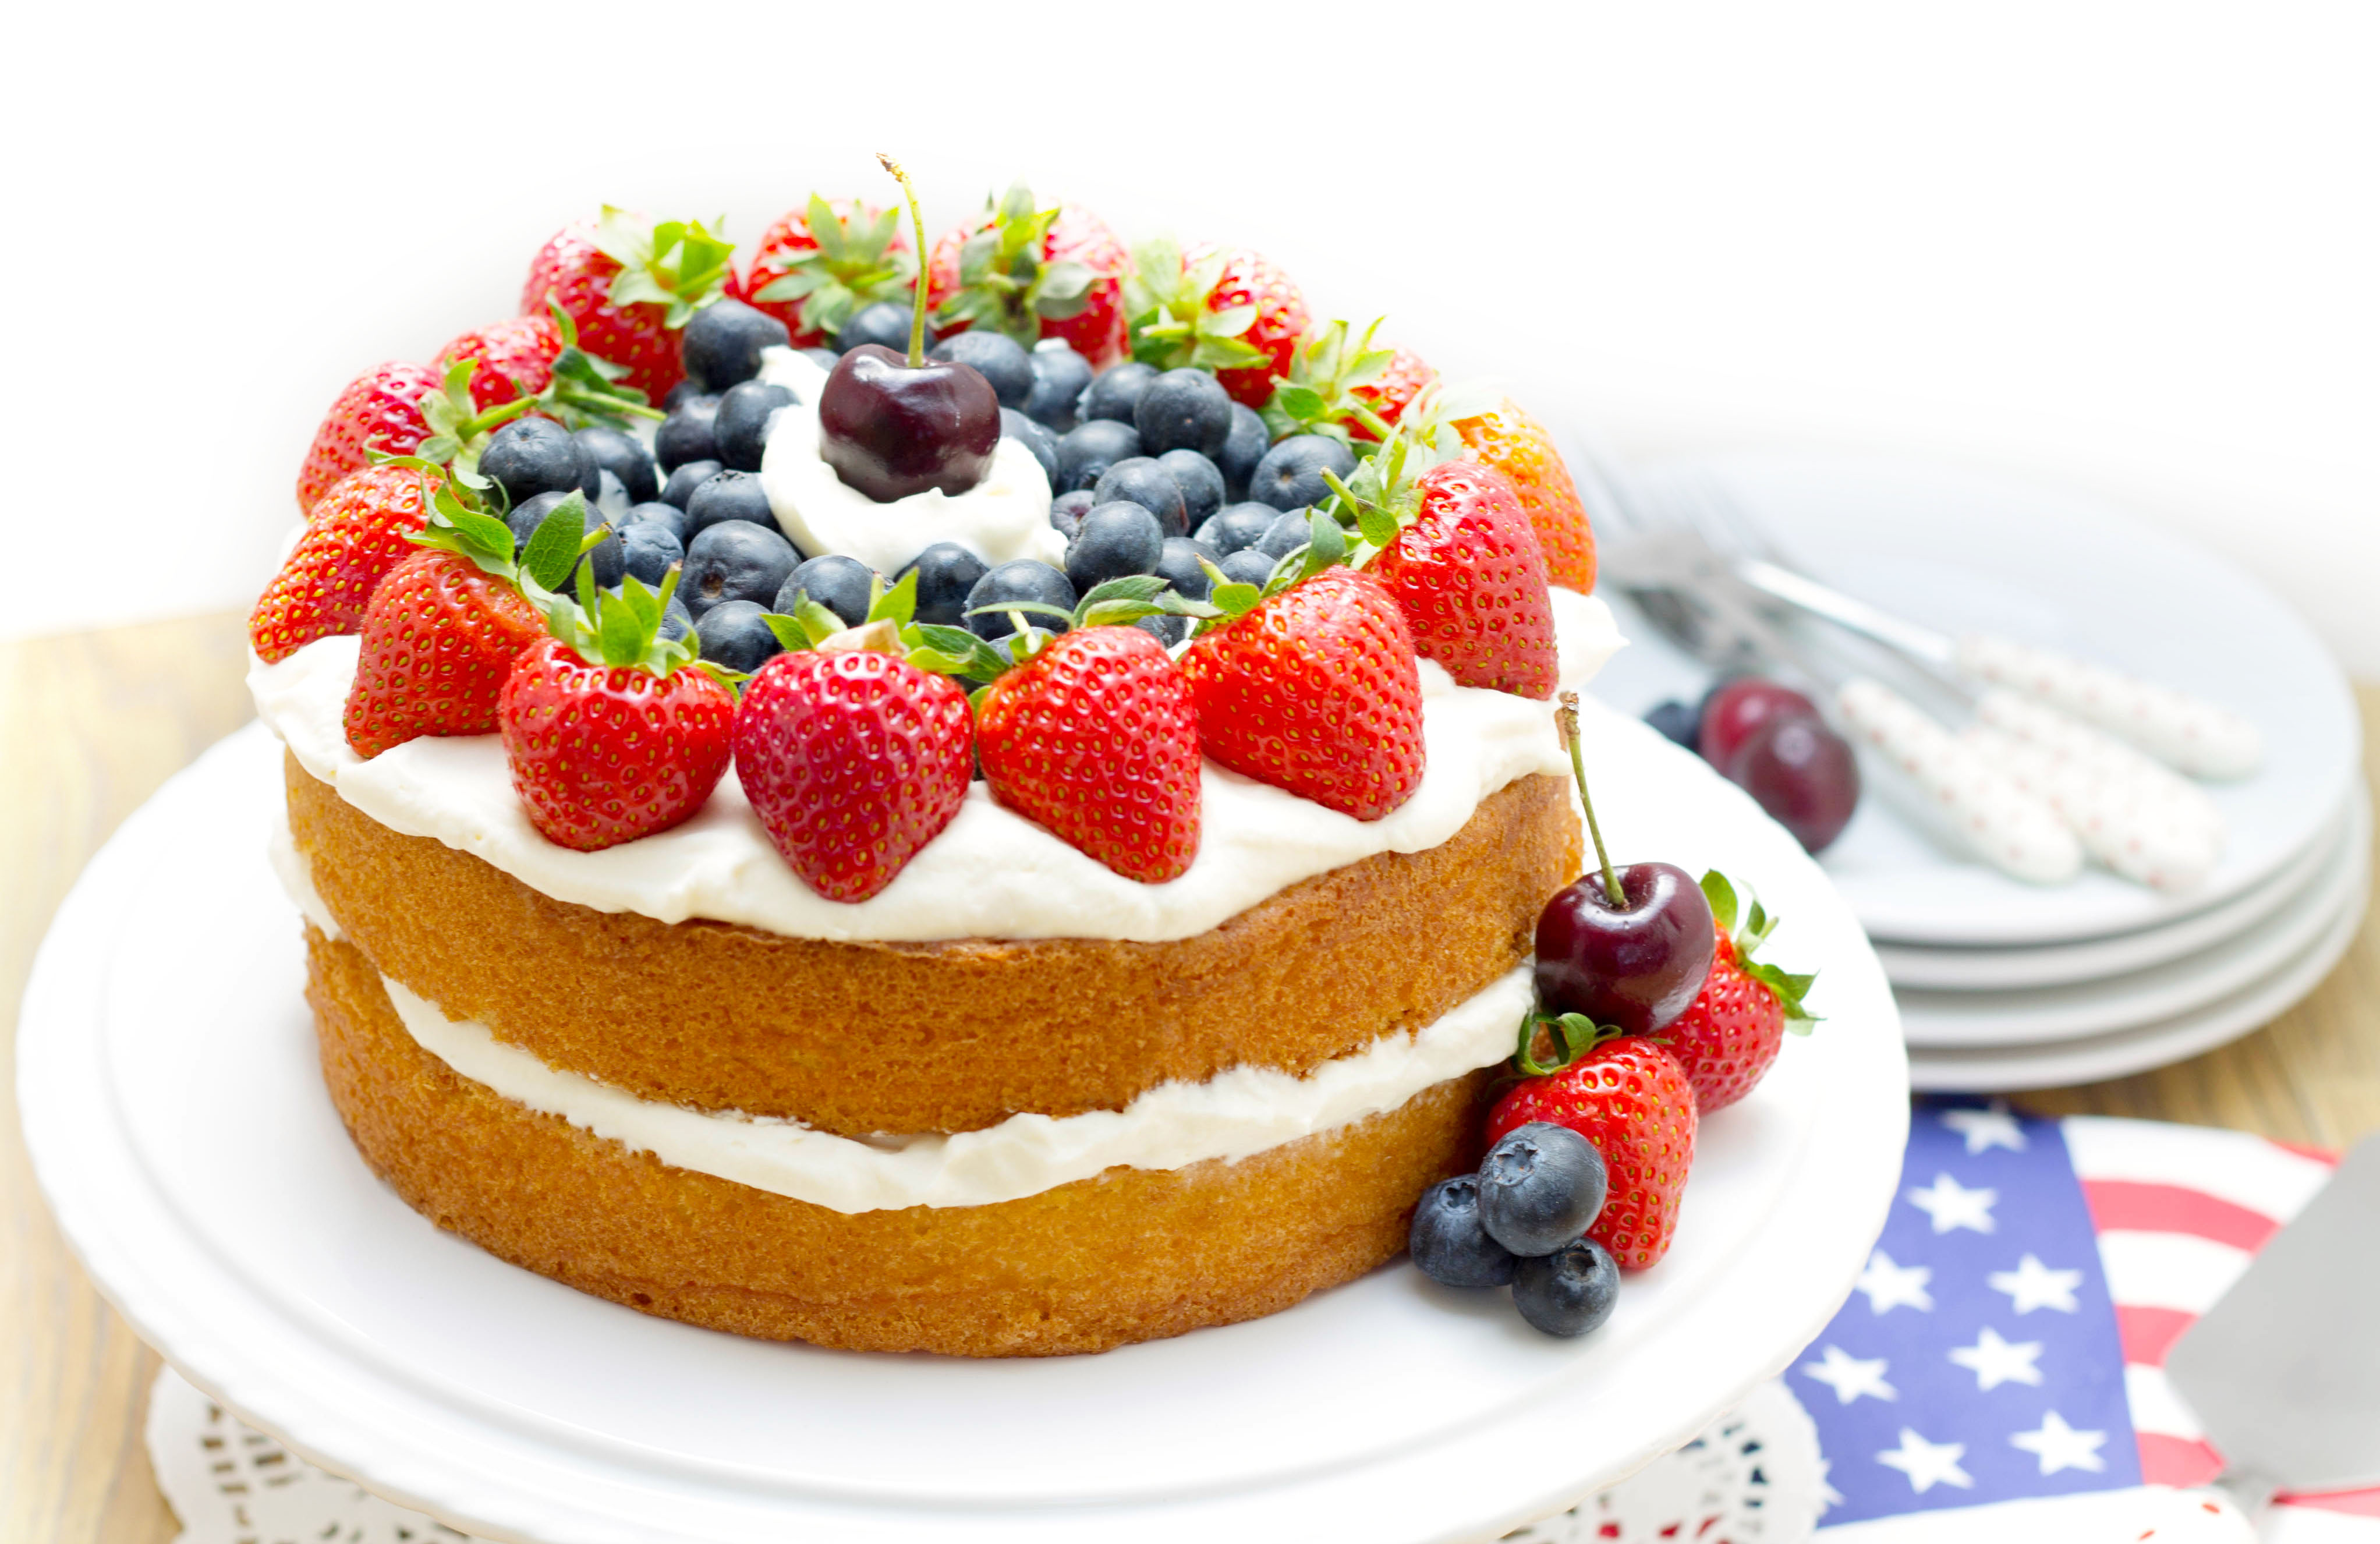 Top 15 Super Enticing And Colorful Fruit Cakes